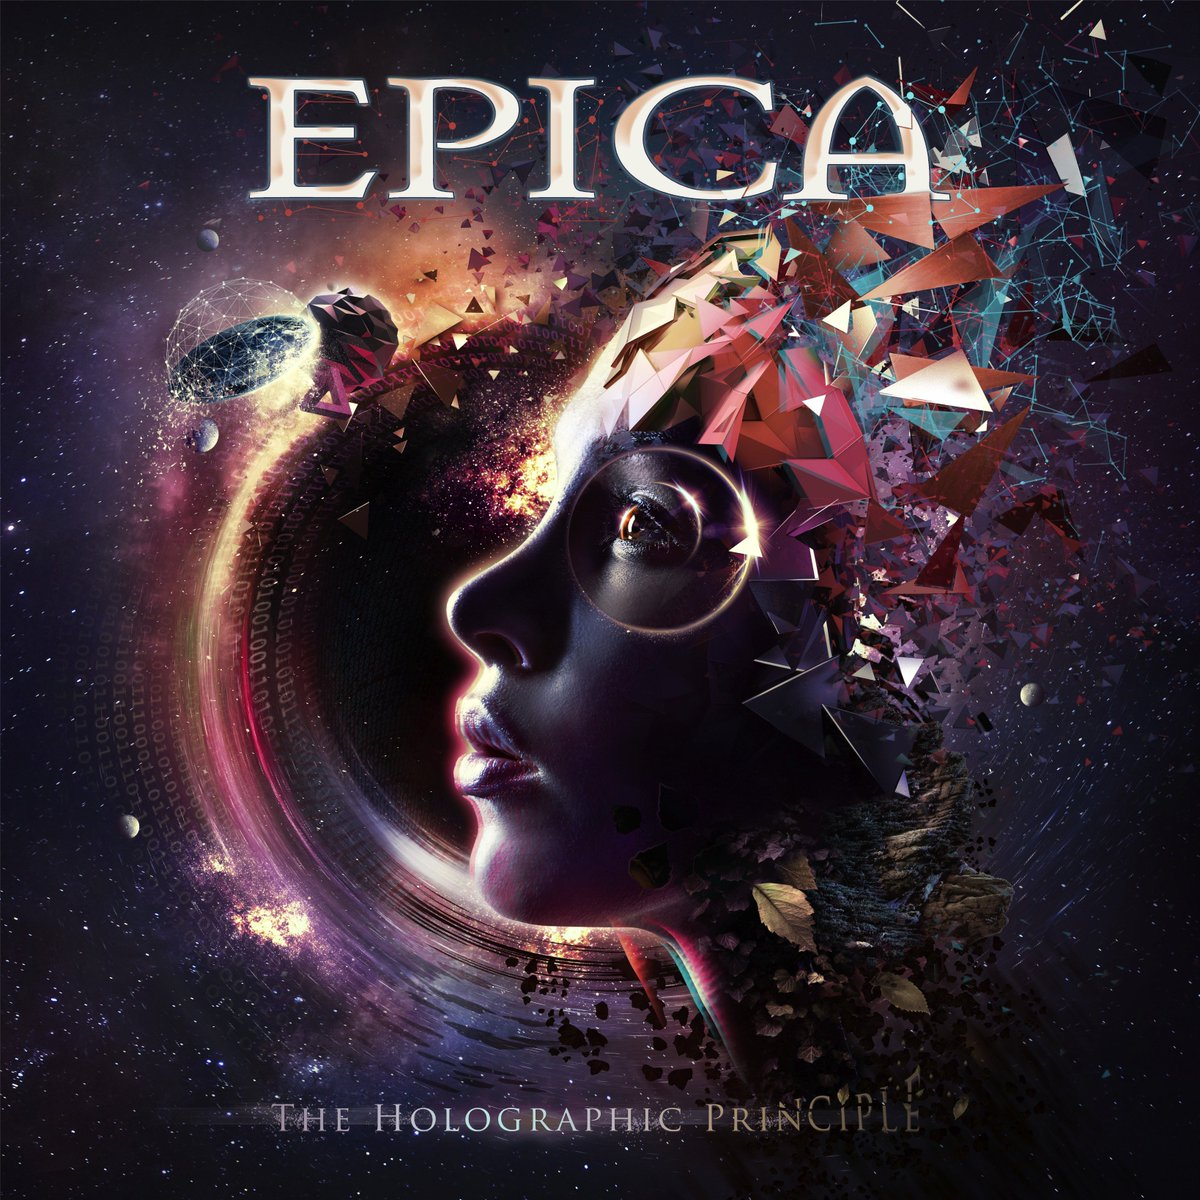 We are proud to announce that our upcoming album The Holographic Principle will be released on September 30th! https://t.co/ADKhhBdg2n